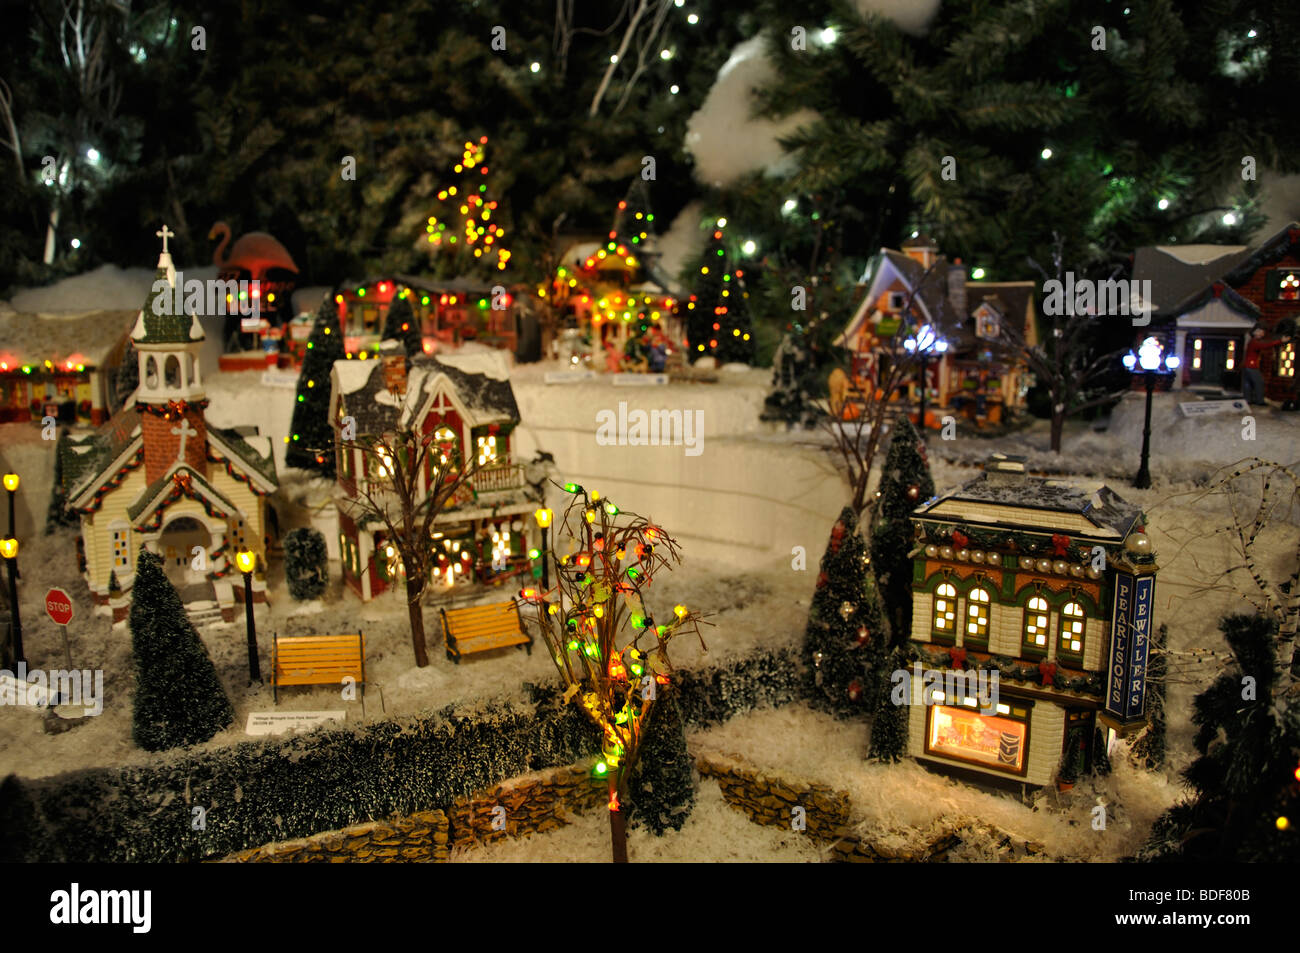 miniature christmas village toy houses decorations stock image - Miniature Christmas Village